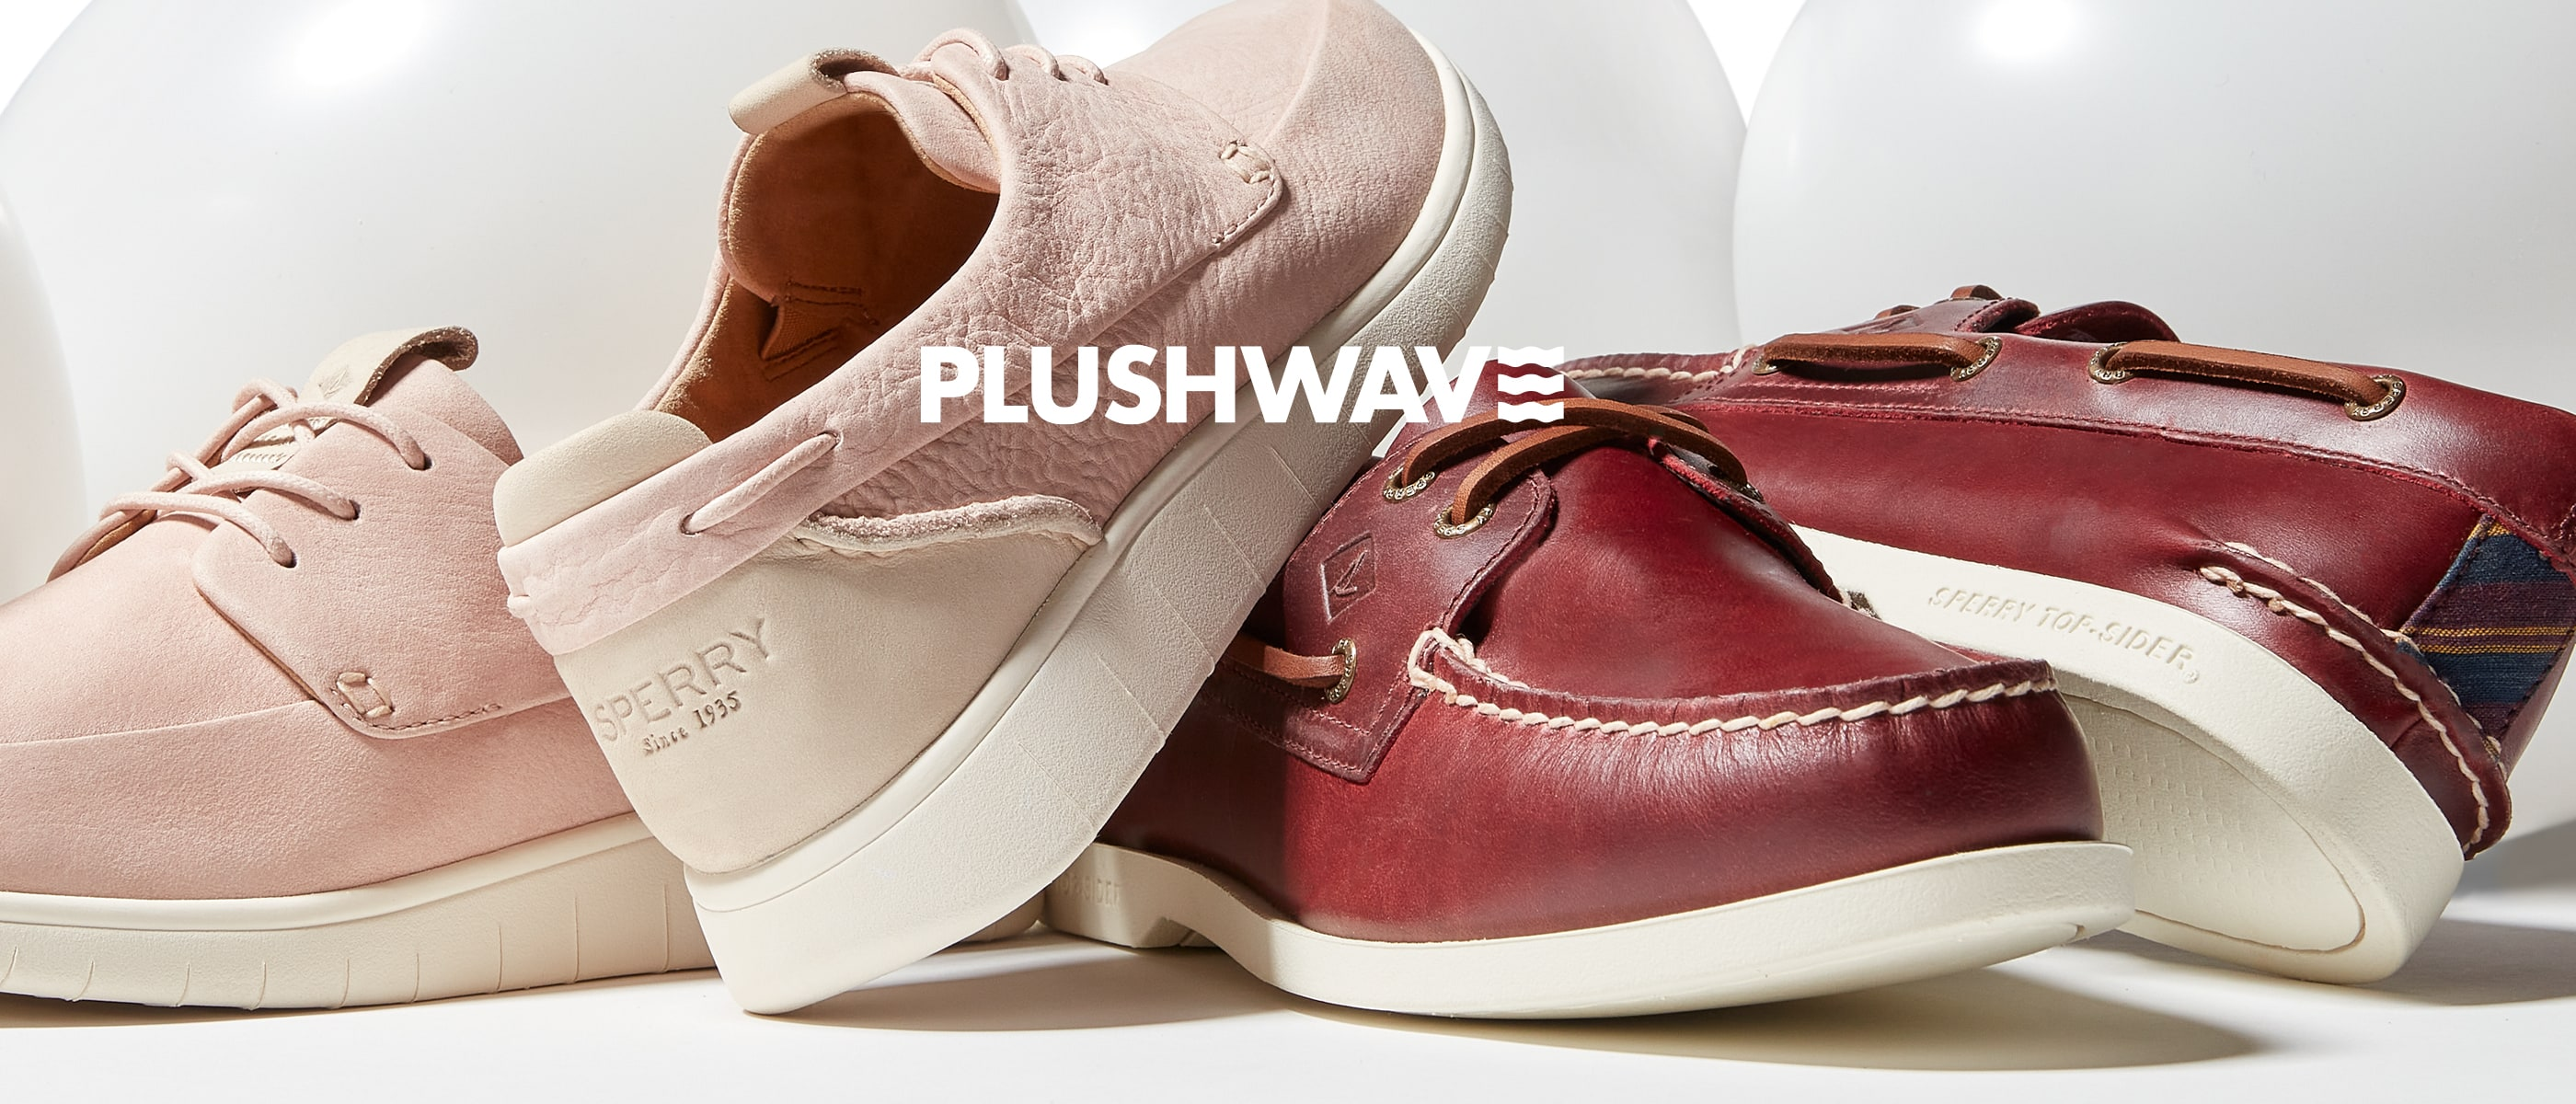 Mens and womens Sperry Plushwave shoe pairs.